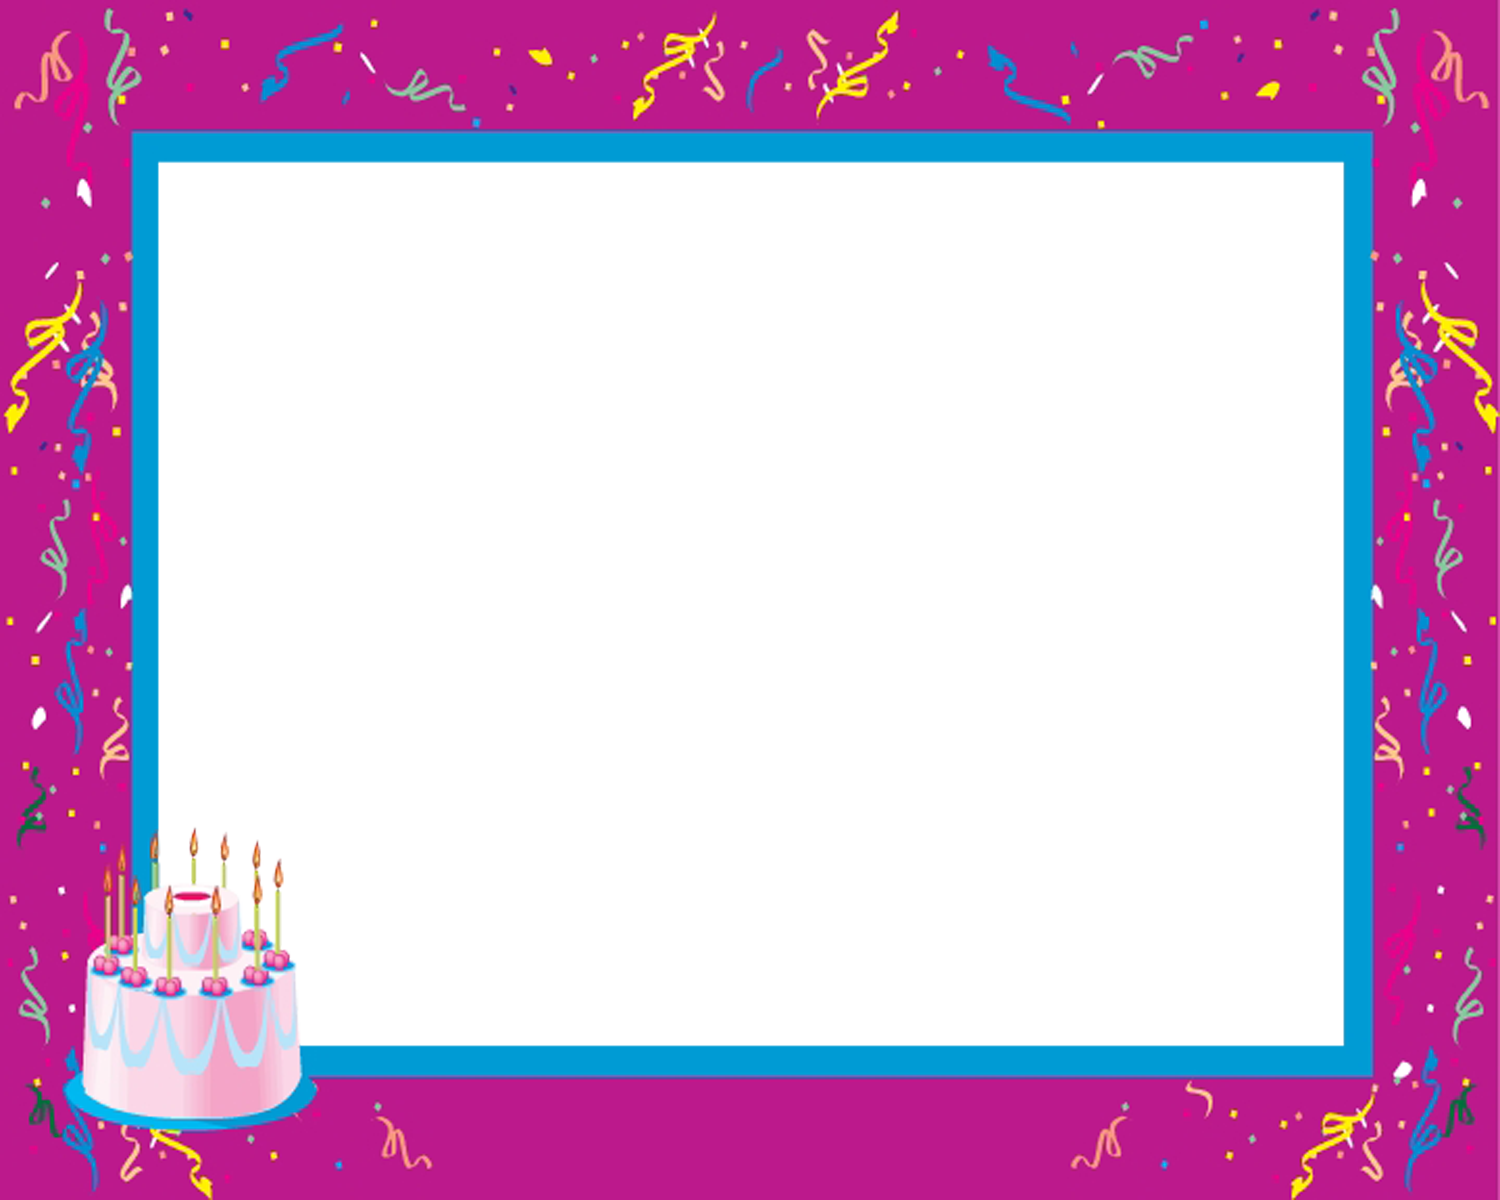 Birthday frames and borders png. Free frame download clip